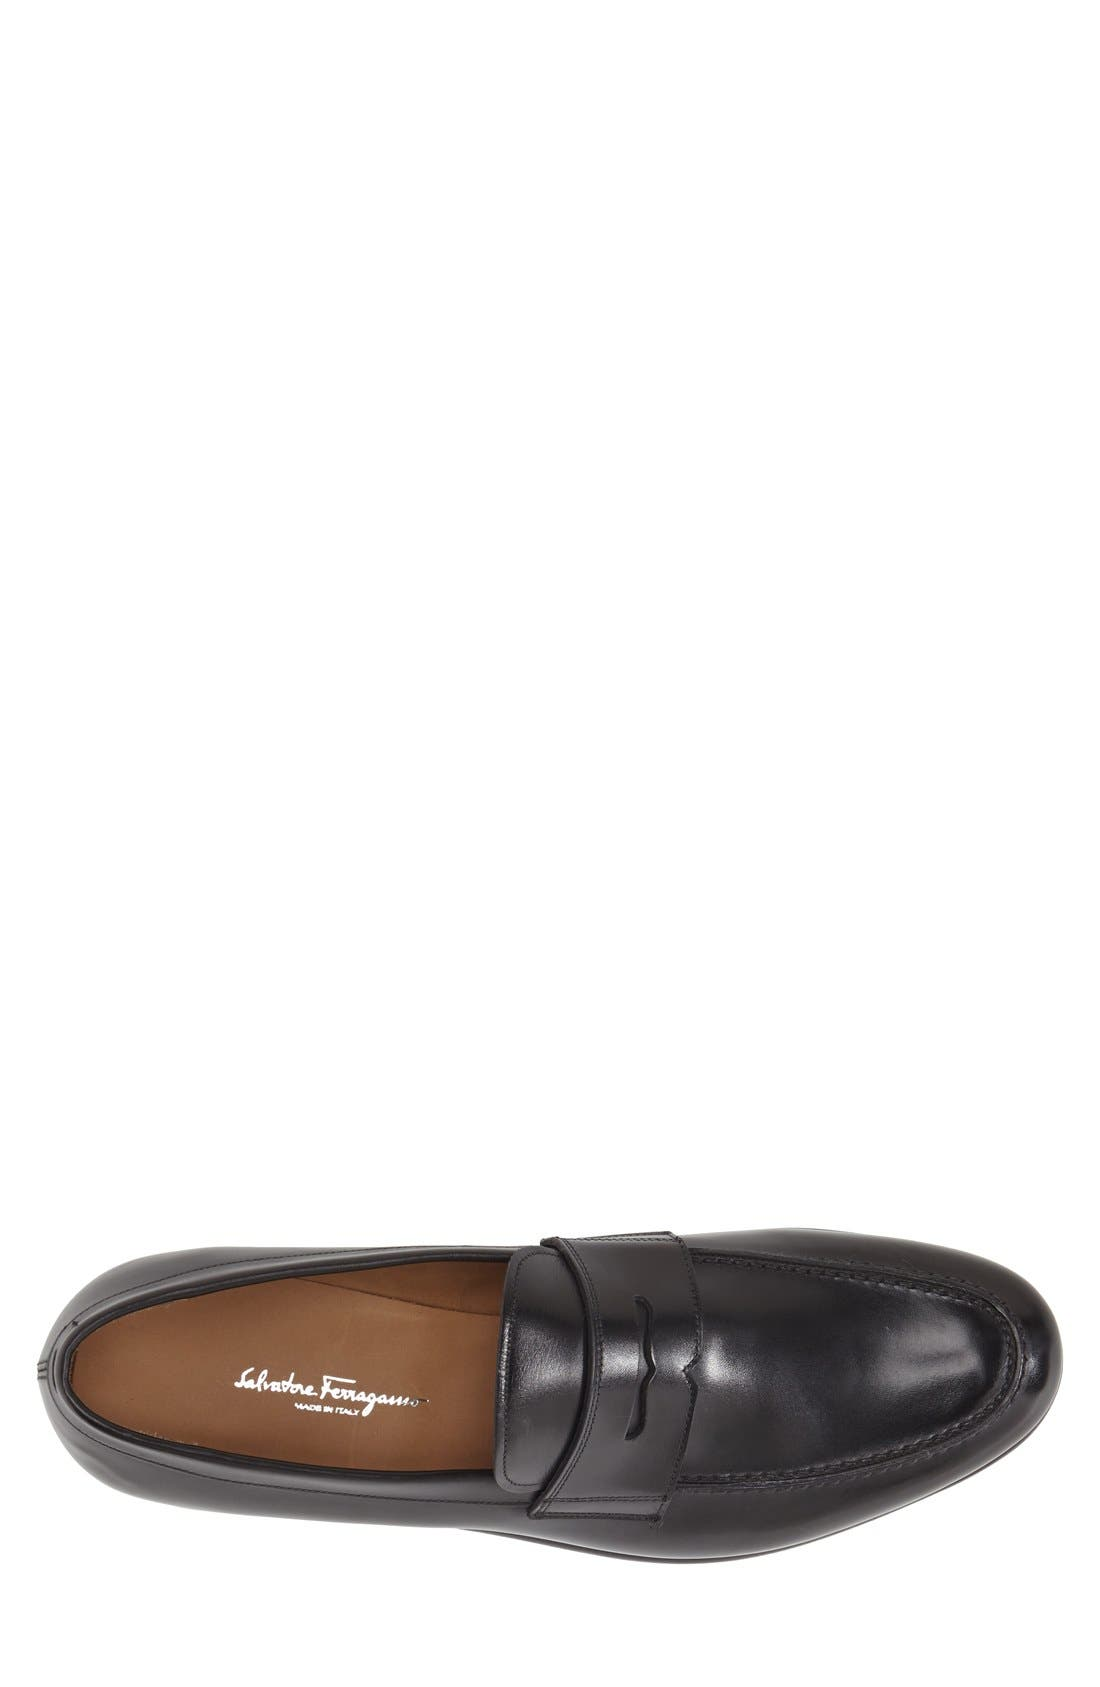 'Rinaldo' Penny Loafer,                             Alternate thumbnail 3, color,                             Nero Leather